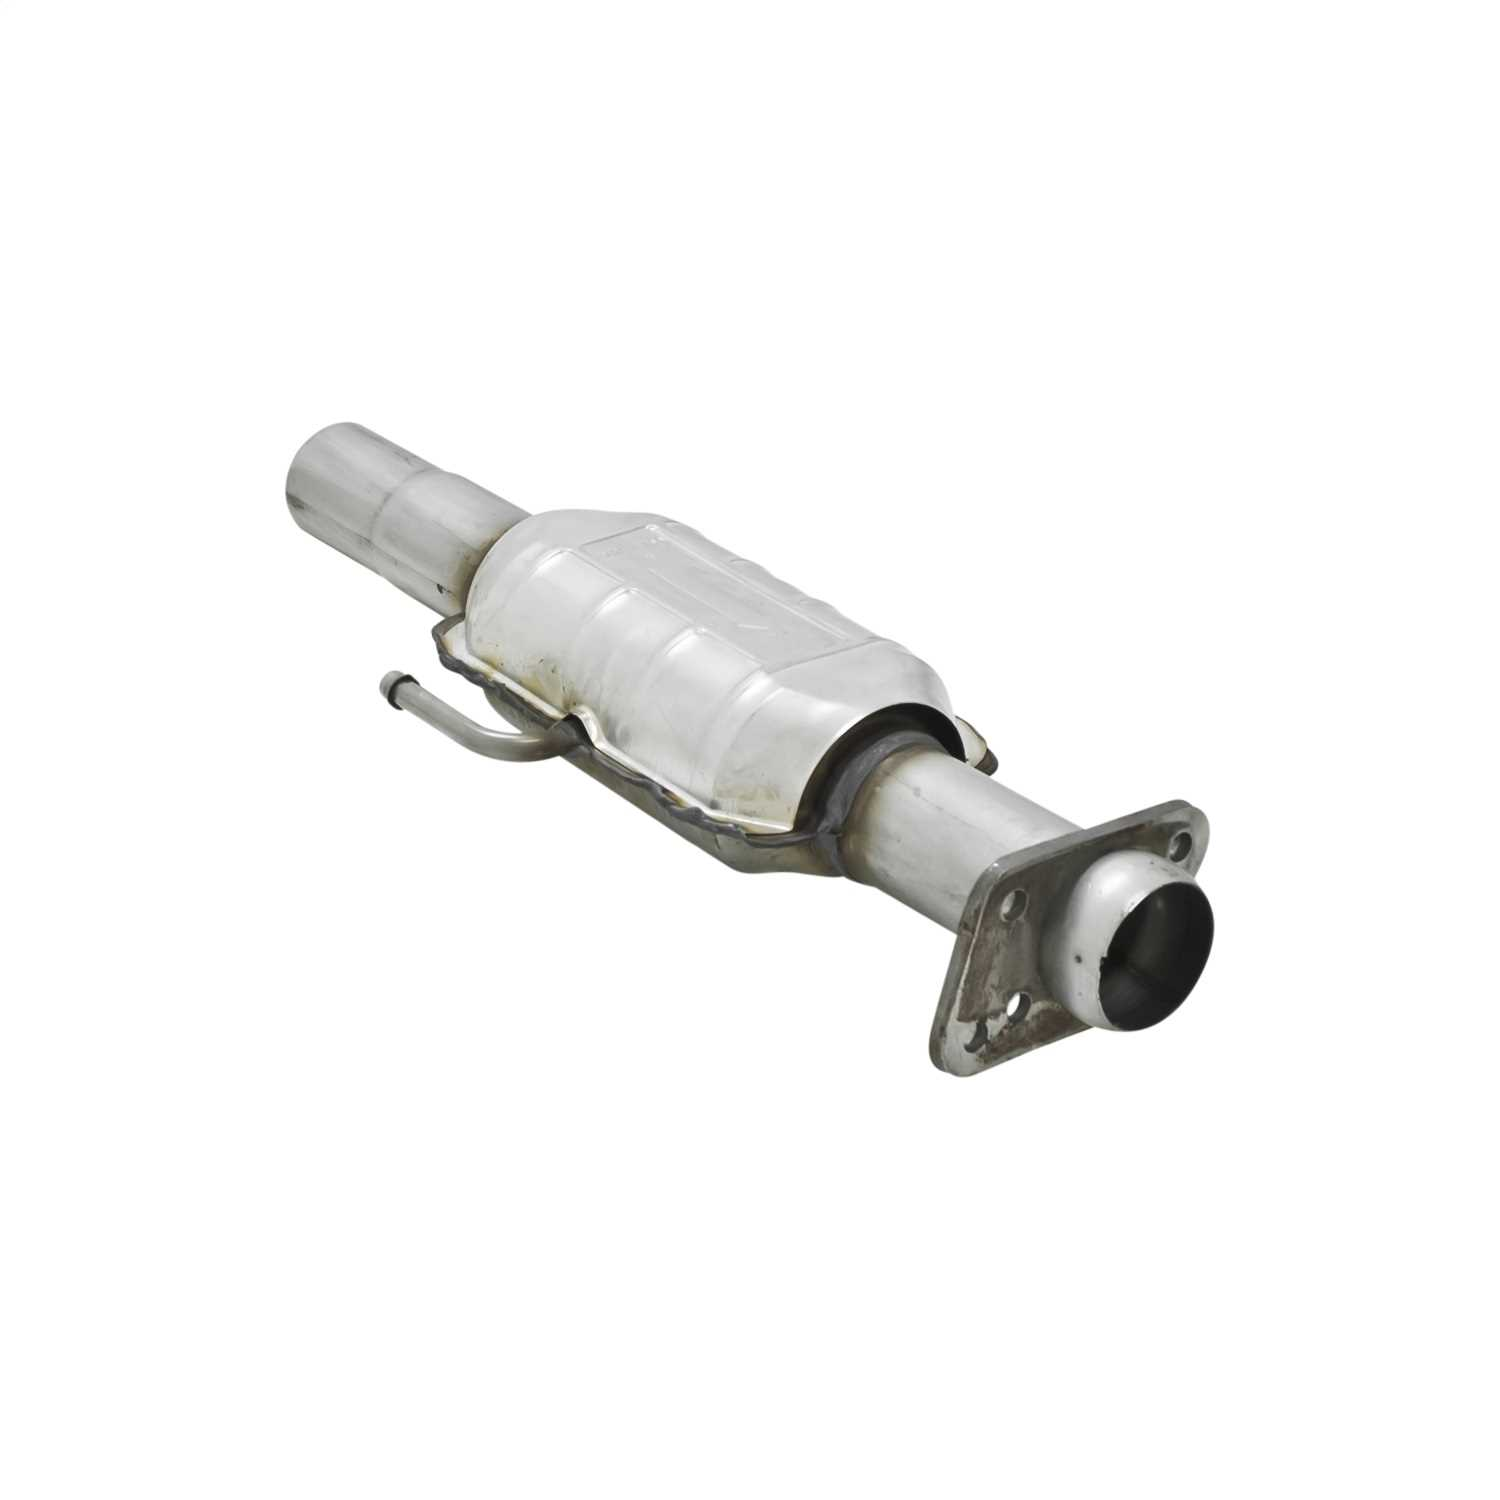 2010001 Flowmaster 49 State Catalytic Converters Direct Fit Catalytic Converter